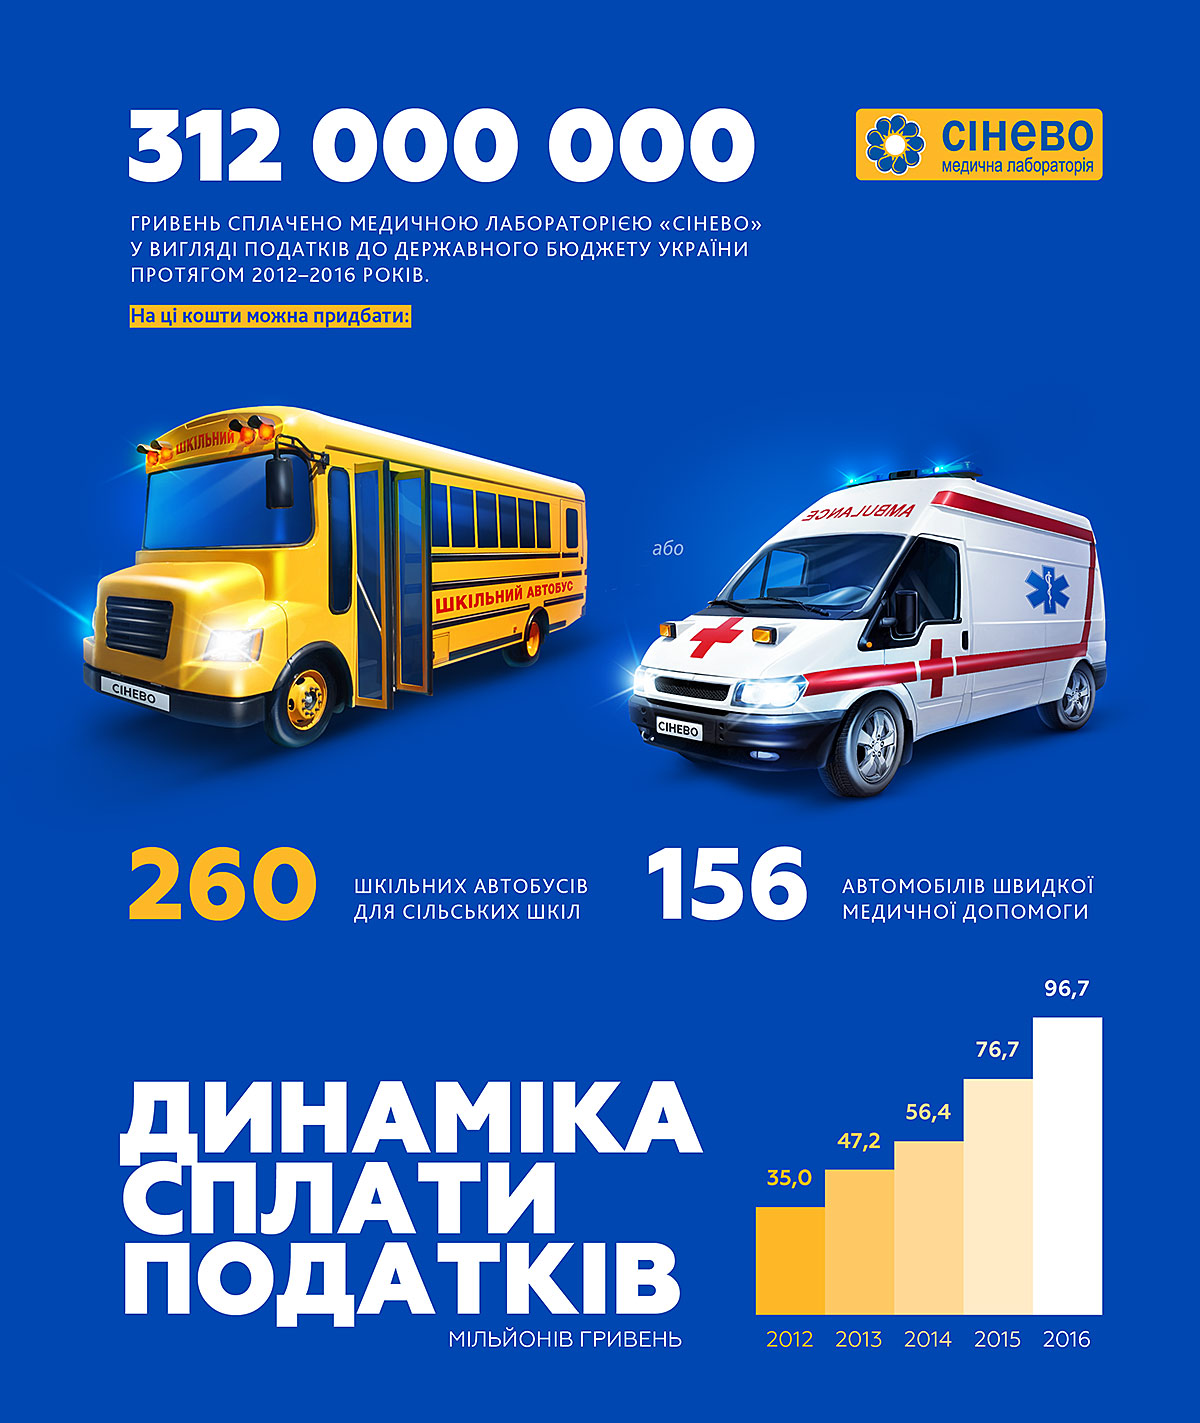 Synevo tax payment. What possible to buy for taxes paid? School bus and ambulance car. The total amount of money paid by the medical laboratory to the budget and the dynamics of tax payments.